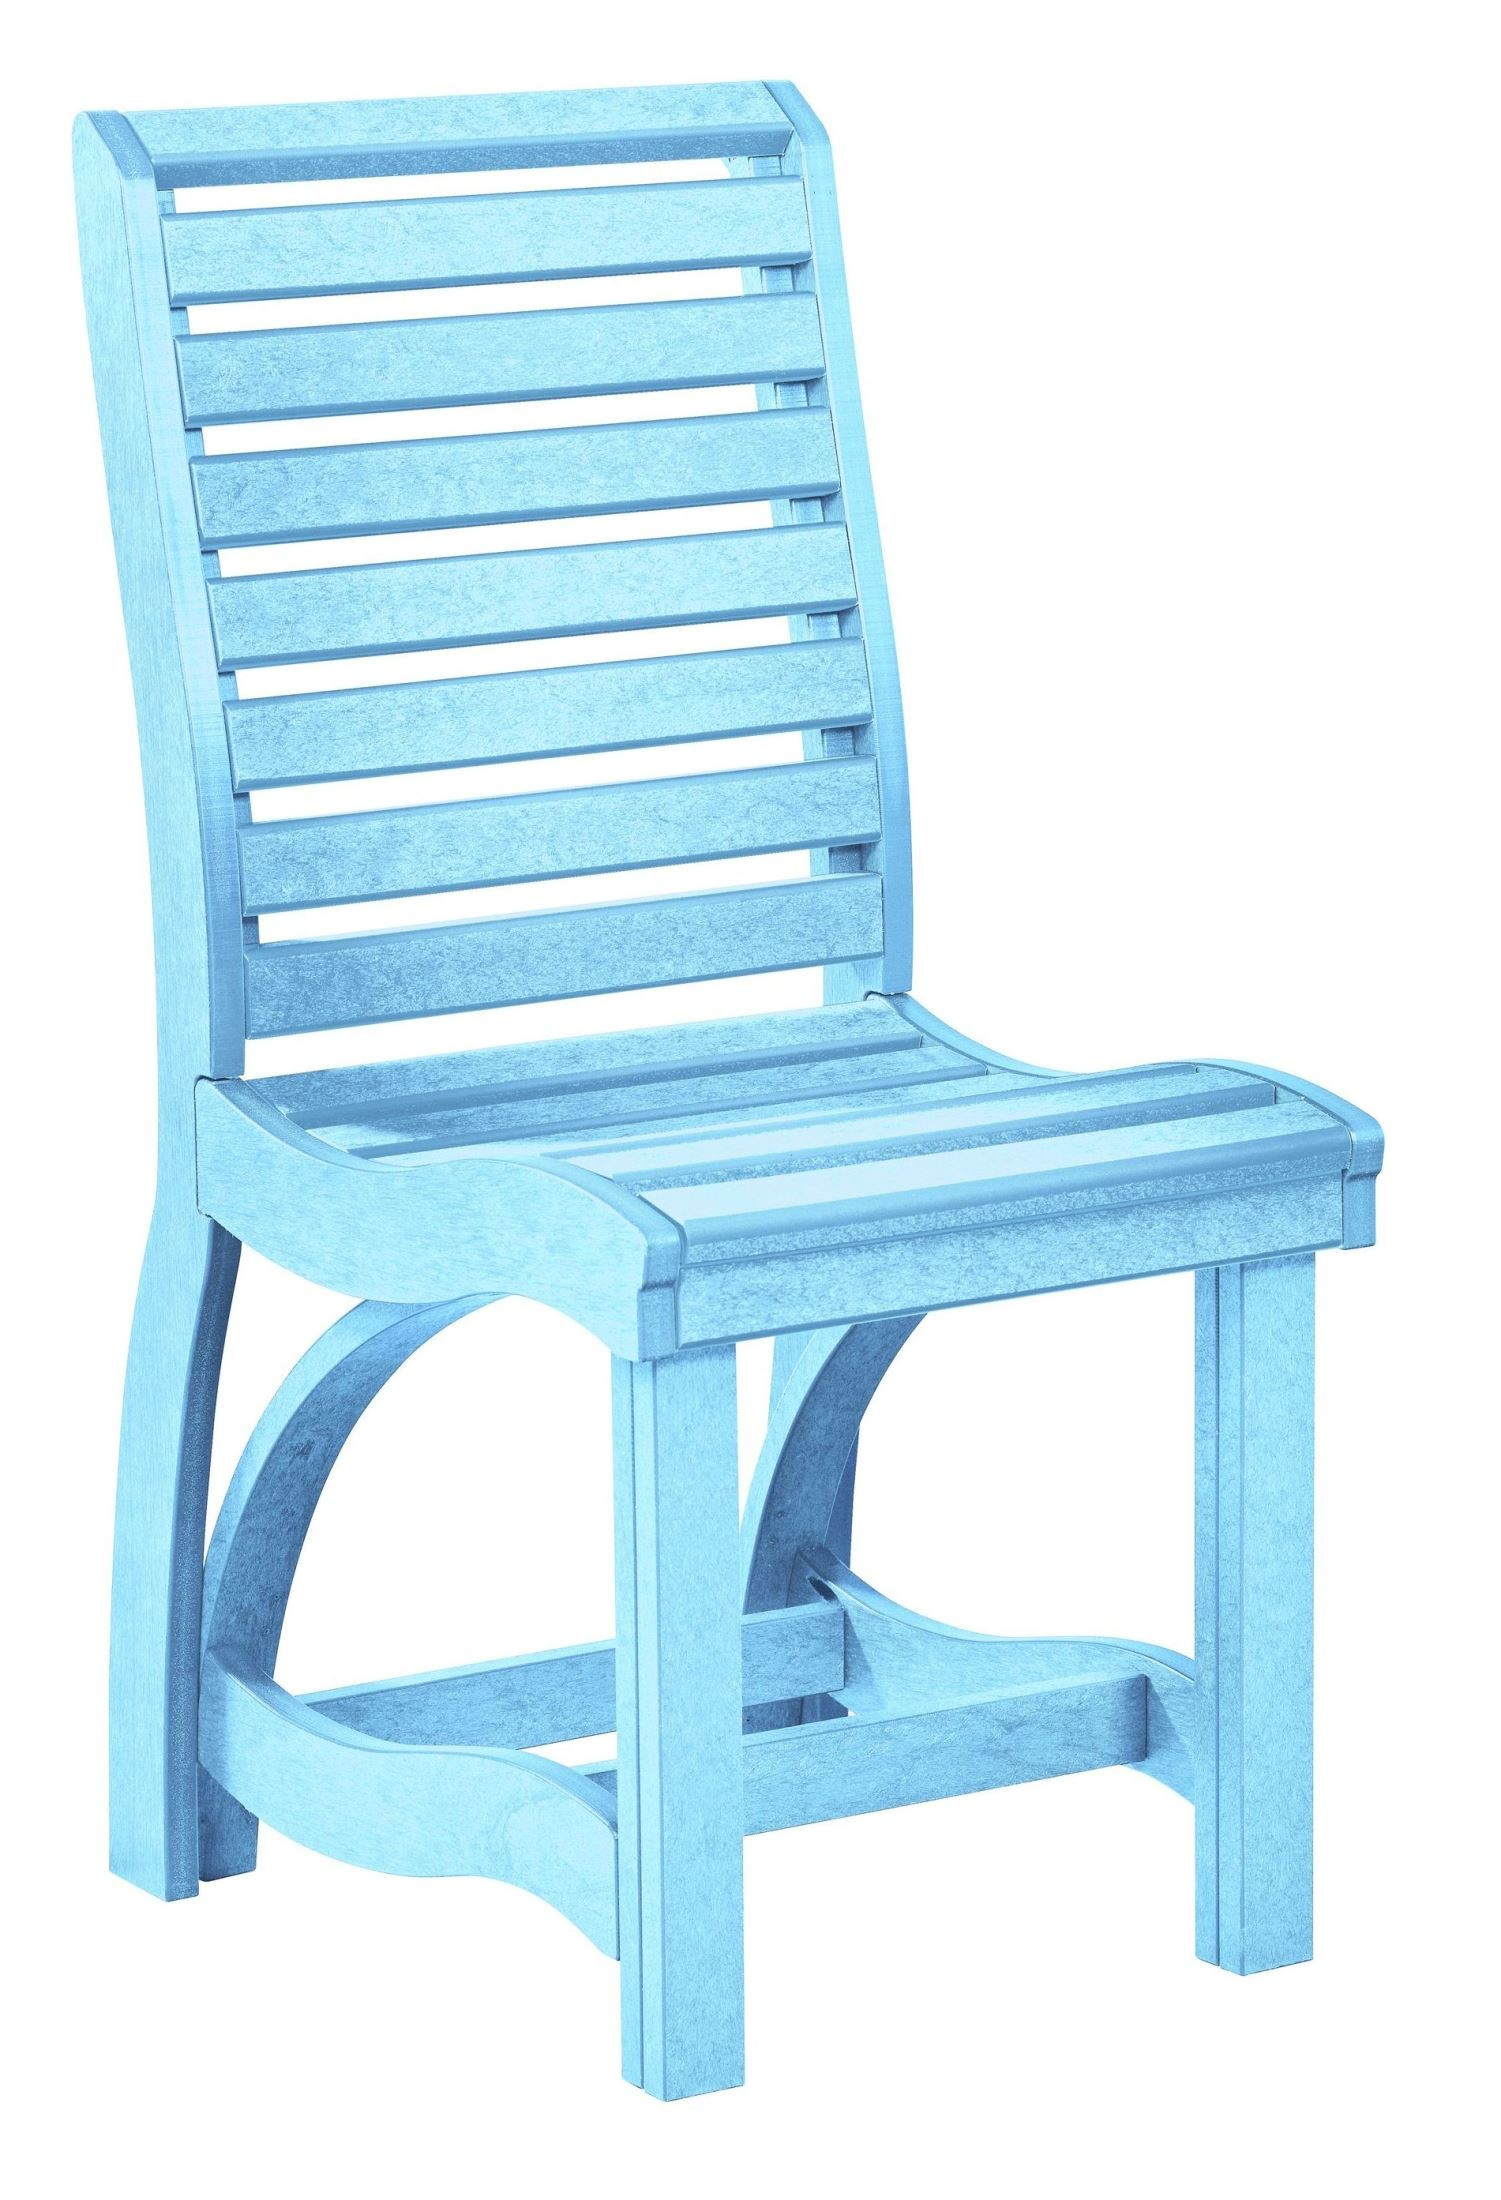 Aqua Dining Chairs St Tropez Aqua Dining Side Chair From Cr Plastic C35 11